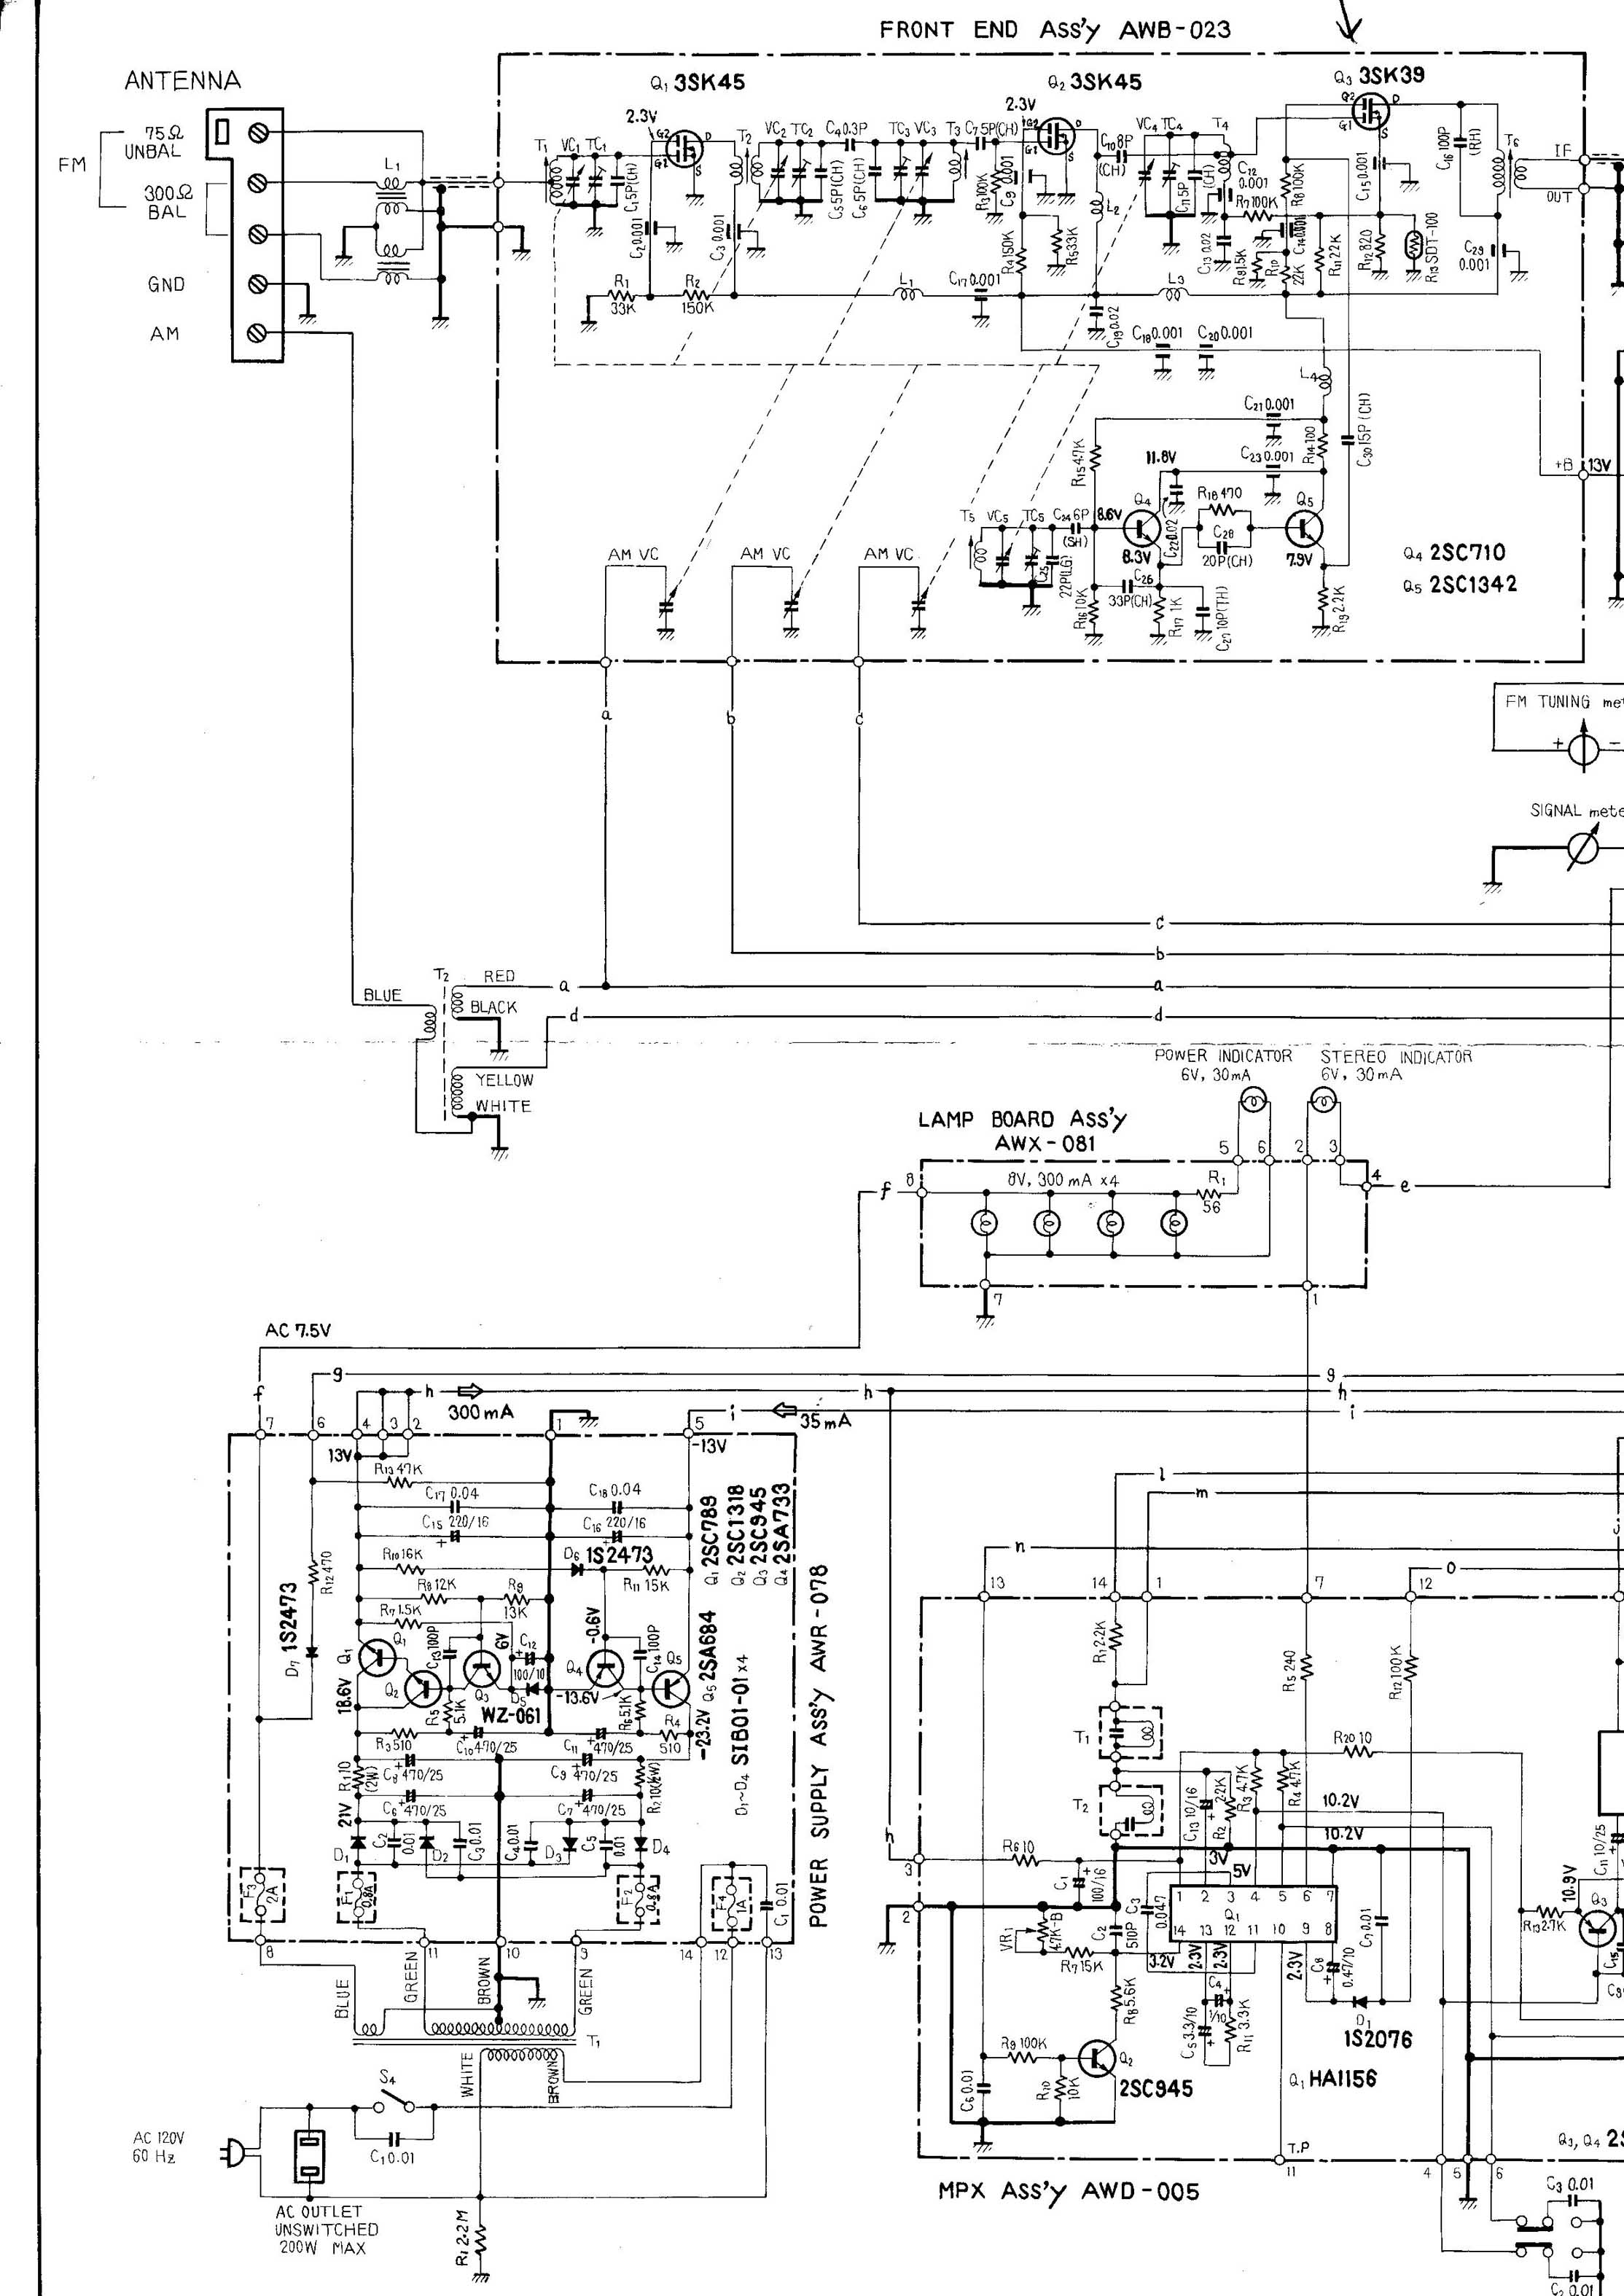 Pioneer Wiring Diagram 2 Fly Deh 2000 Tuner Information Center Tuners Rh Fmtunerinfo Com Car Stereo Mvh S301bt Diagrams